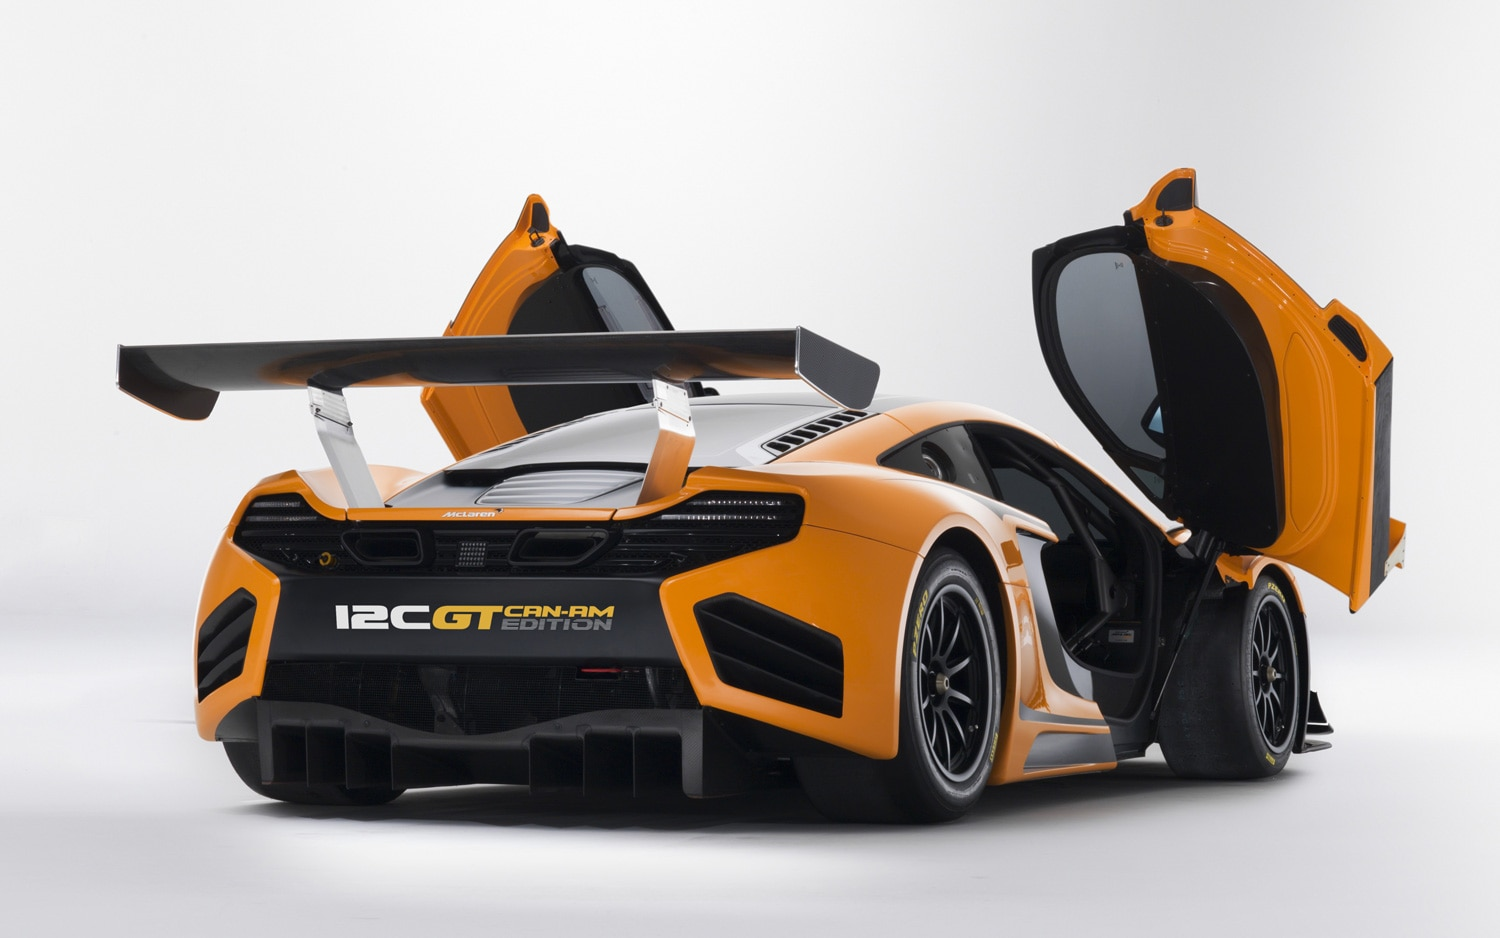 McLaren 12C GT Can-Am To See Limited Production Run